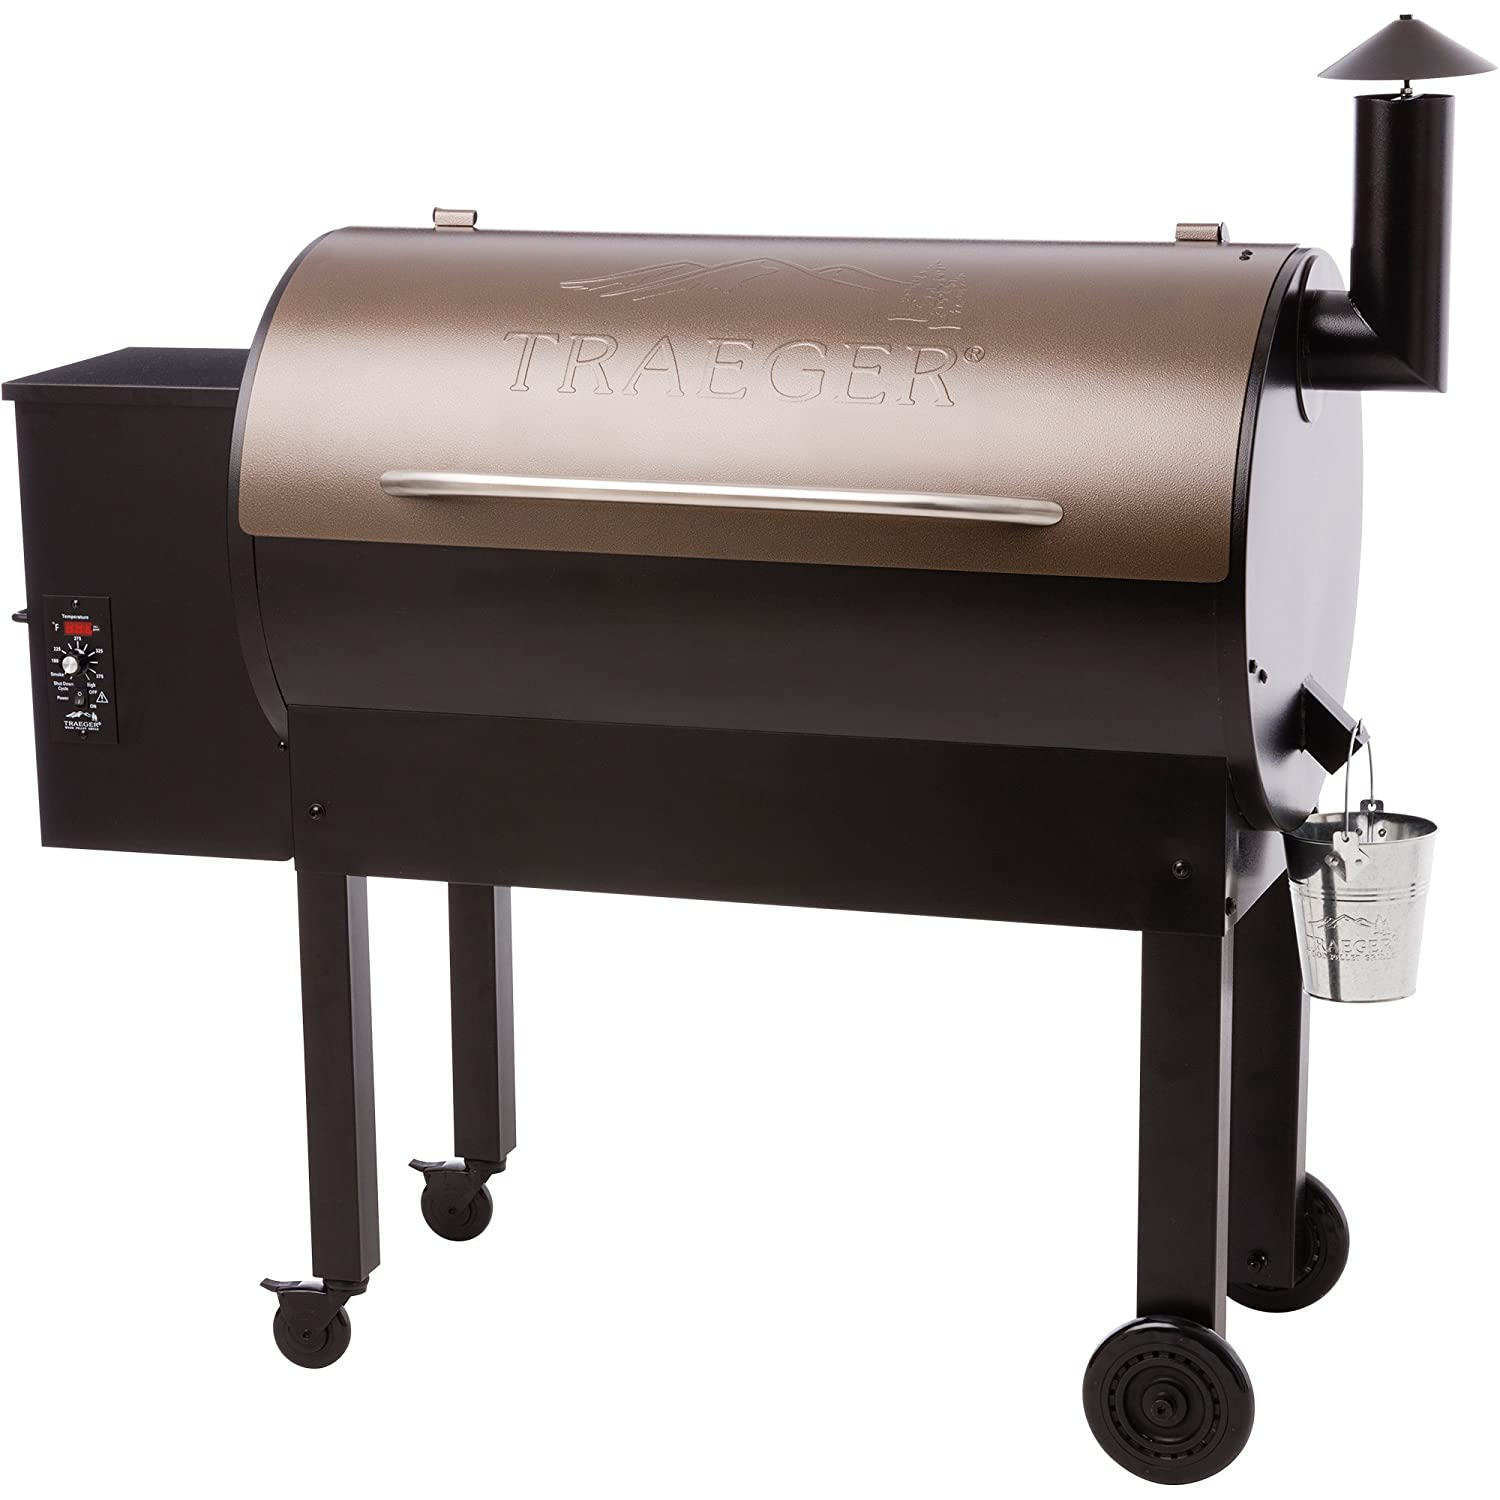 All You Need to Know About Pellet Smokers